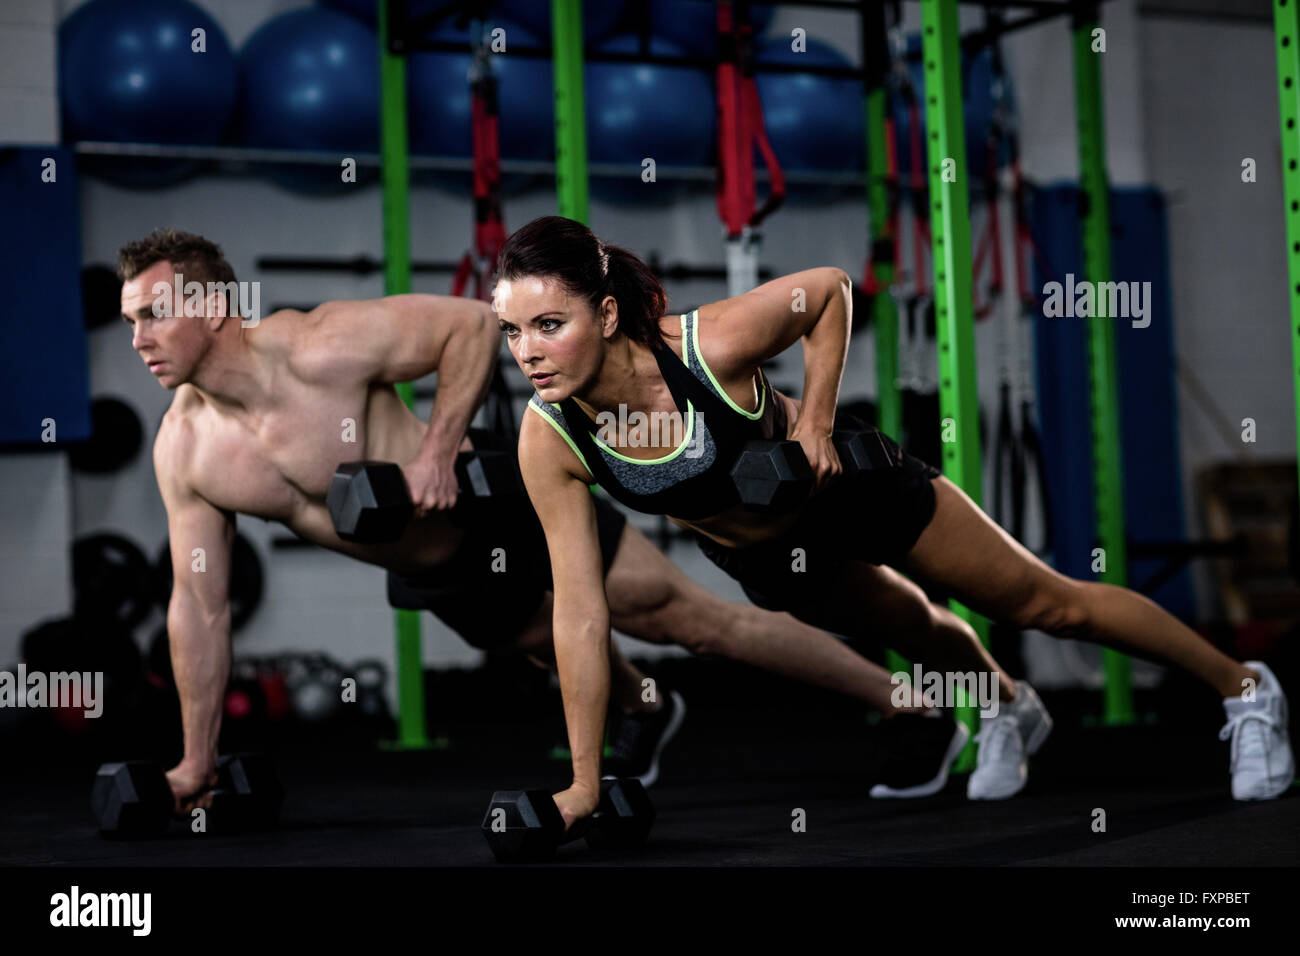 Man and woman exercising with dumbbell - Stock Image